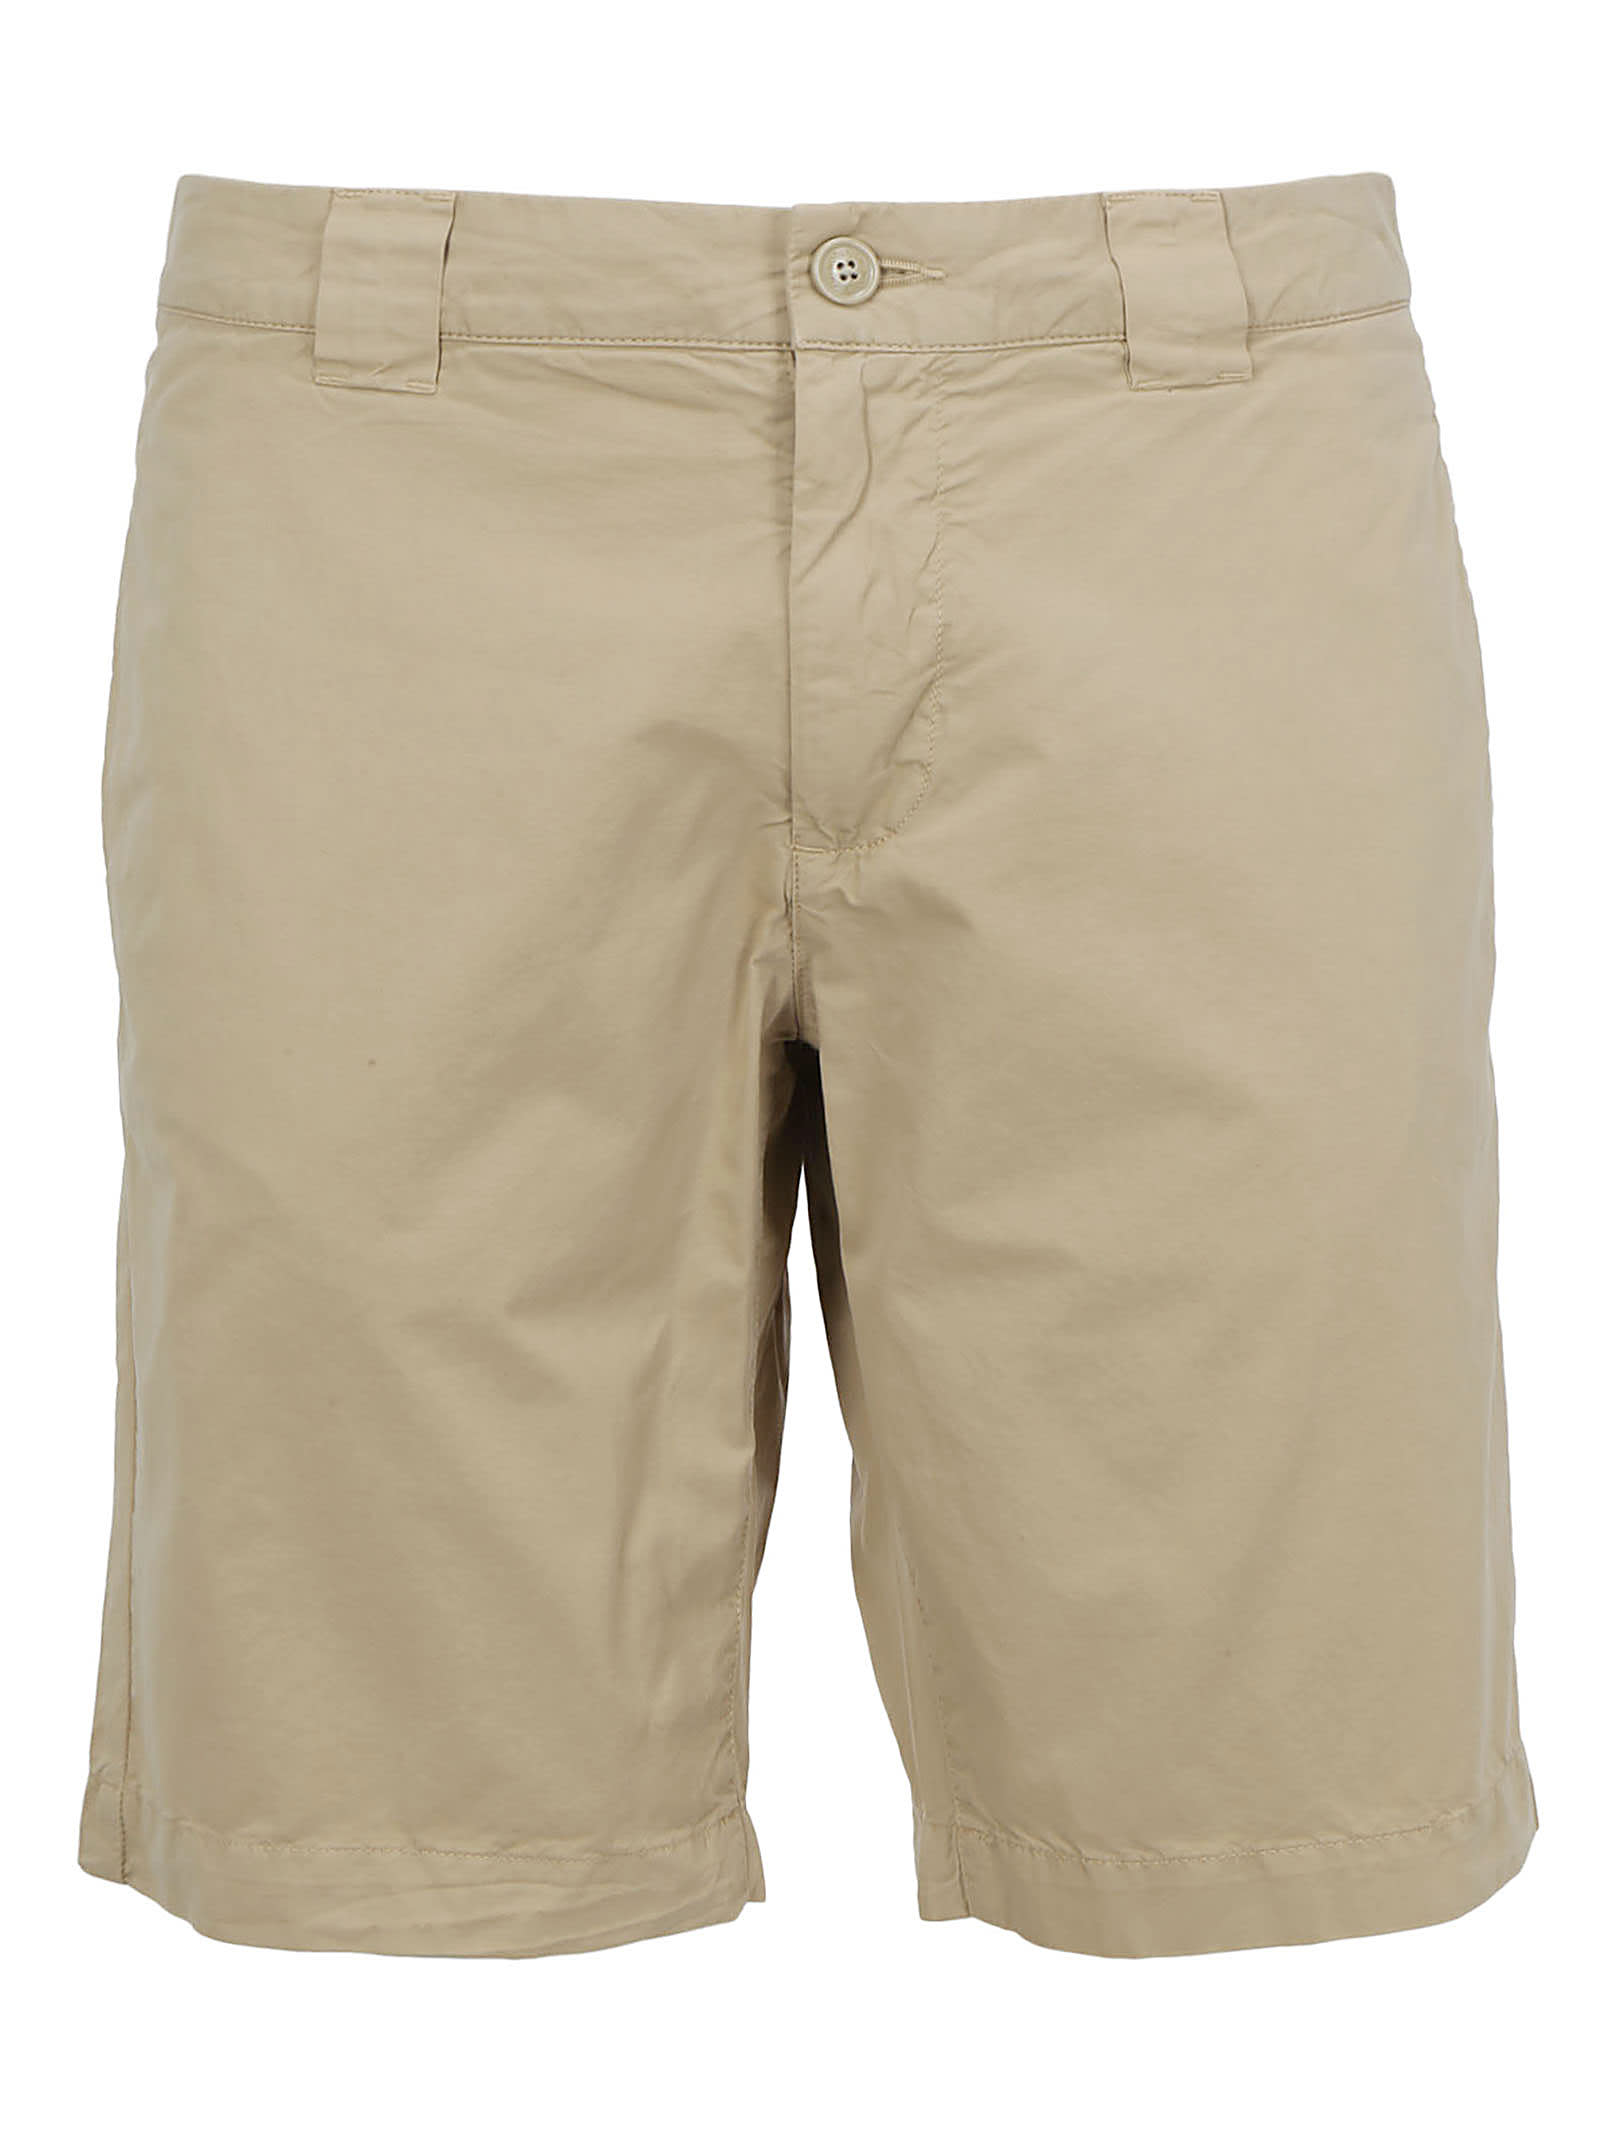 Beige Cotton Bermuda Shorts by Woolrich, zip and button closure, belt loops, two welt pockets on front and back, back logo tag. Composition: 100% Cotton